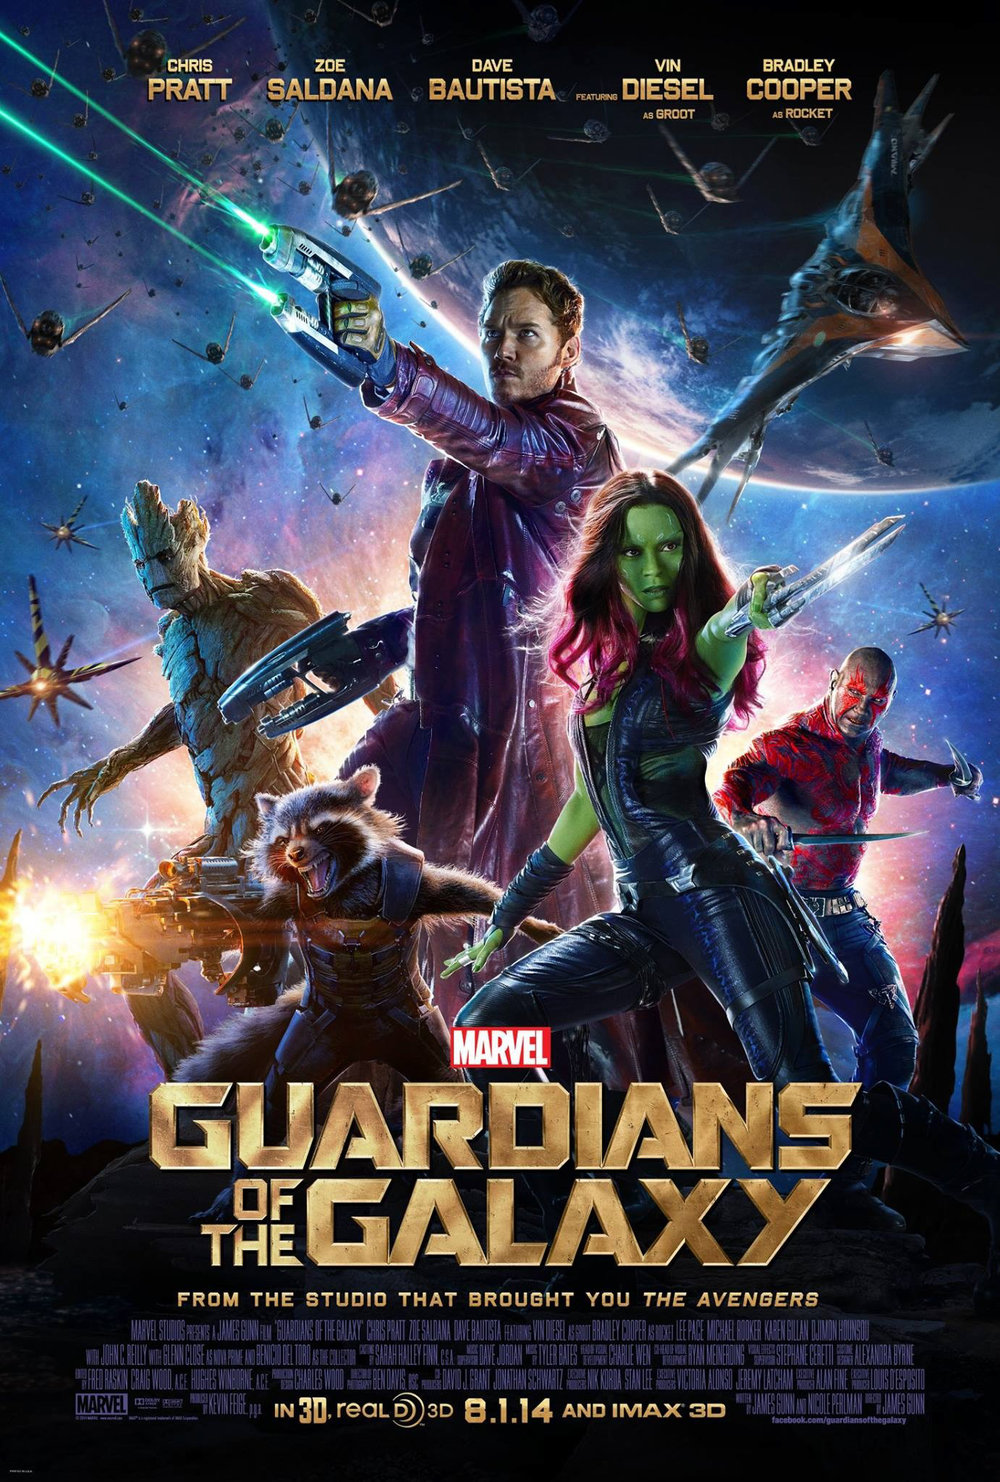 Guardians of the Galaxy - Senior Lighting Technical Director @ Sony Pictures Imageworks Vancouver